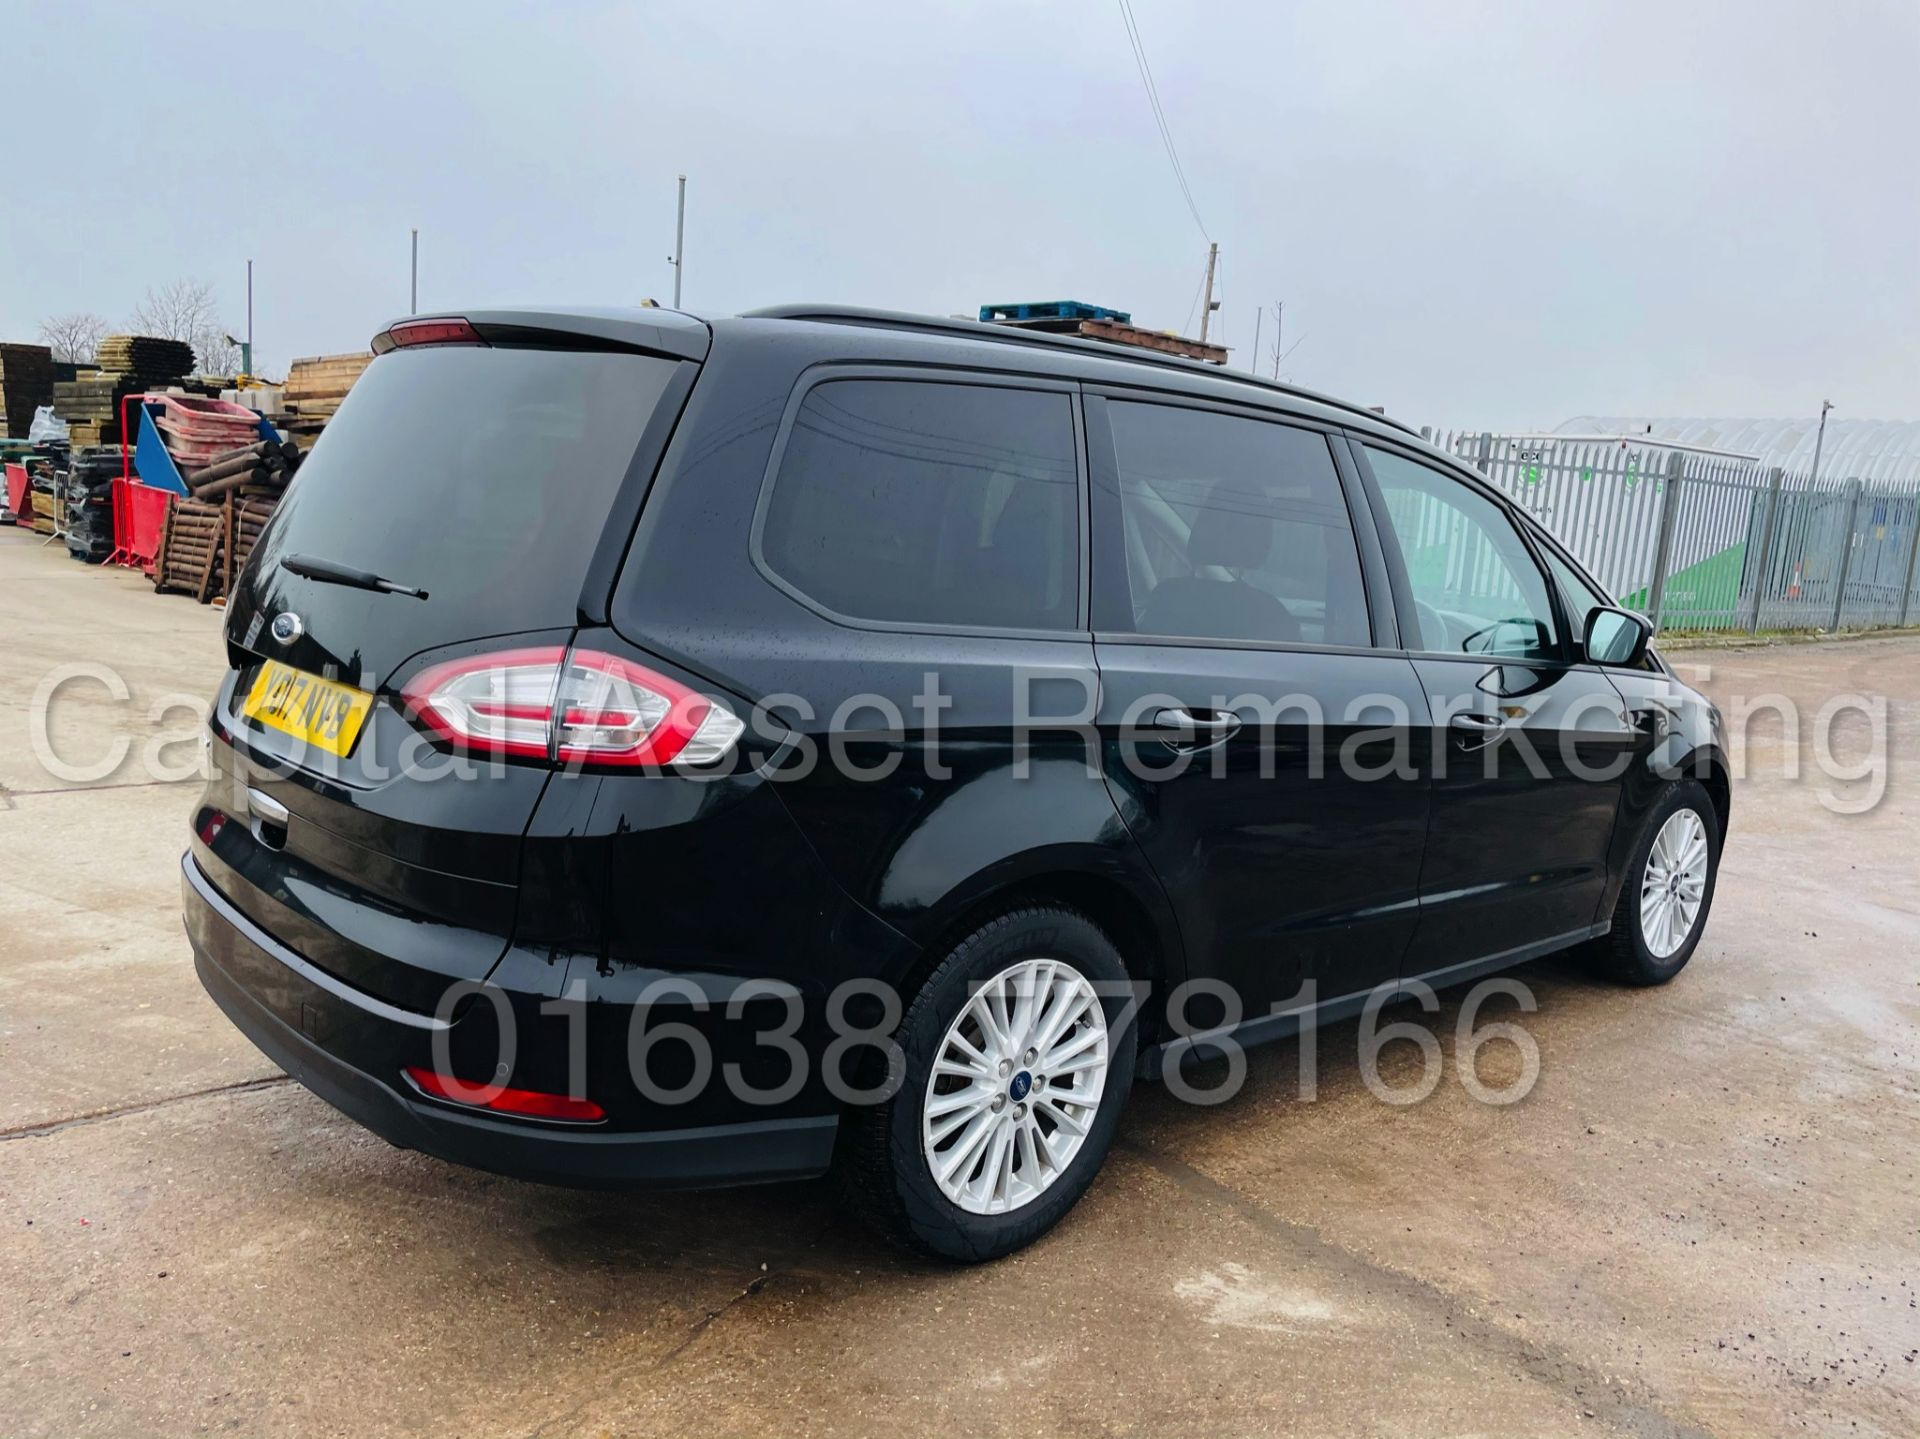 (On Sale) FORD GALAXY *ZETEC EDITION* 7 SEATER MPV (2017 - EURO 6) '2.0 TDCI - AUTO' (1 OWNER) - Image 13 of 48